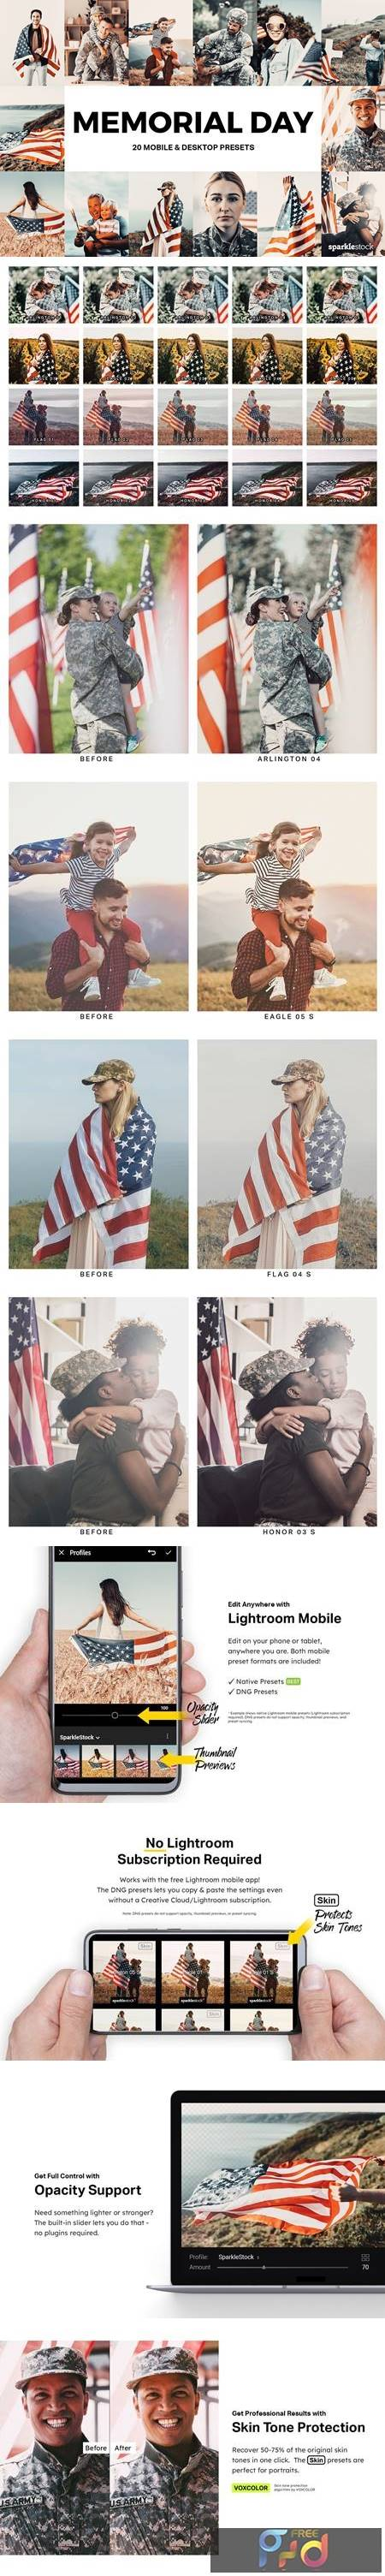 20 Memorial Day Lightroom Presets and LUTs 4939185 1